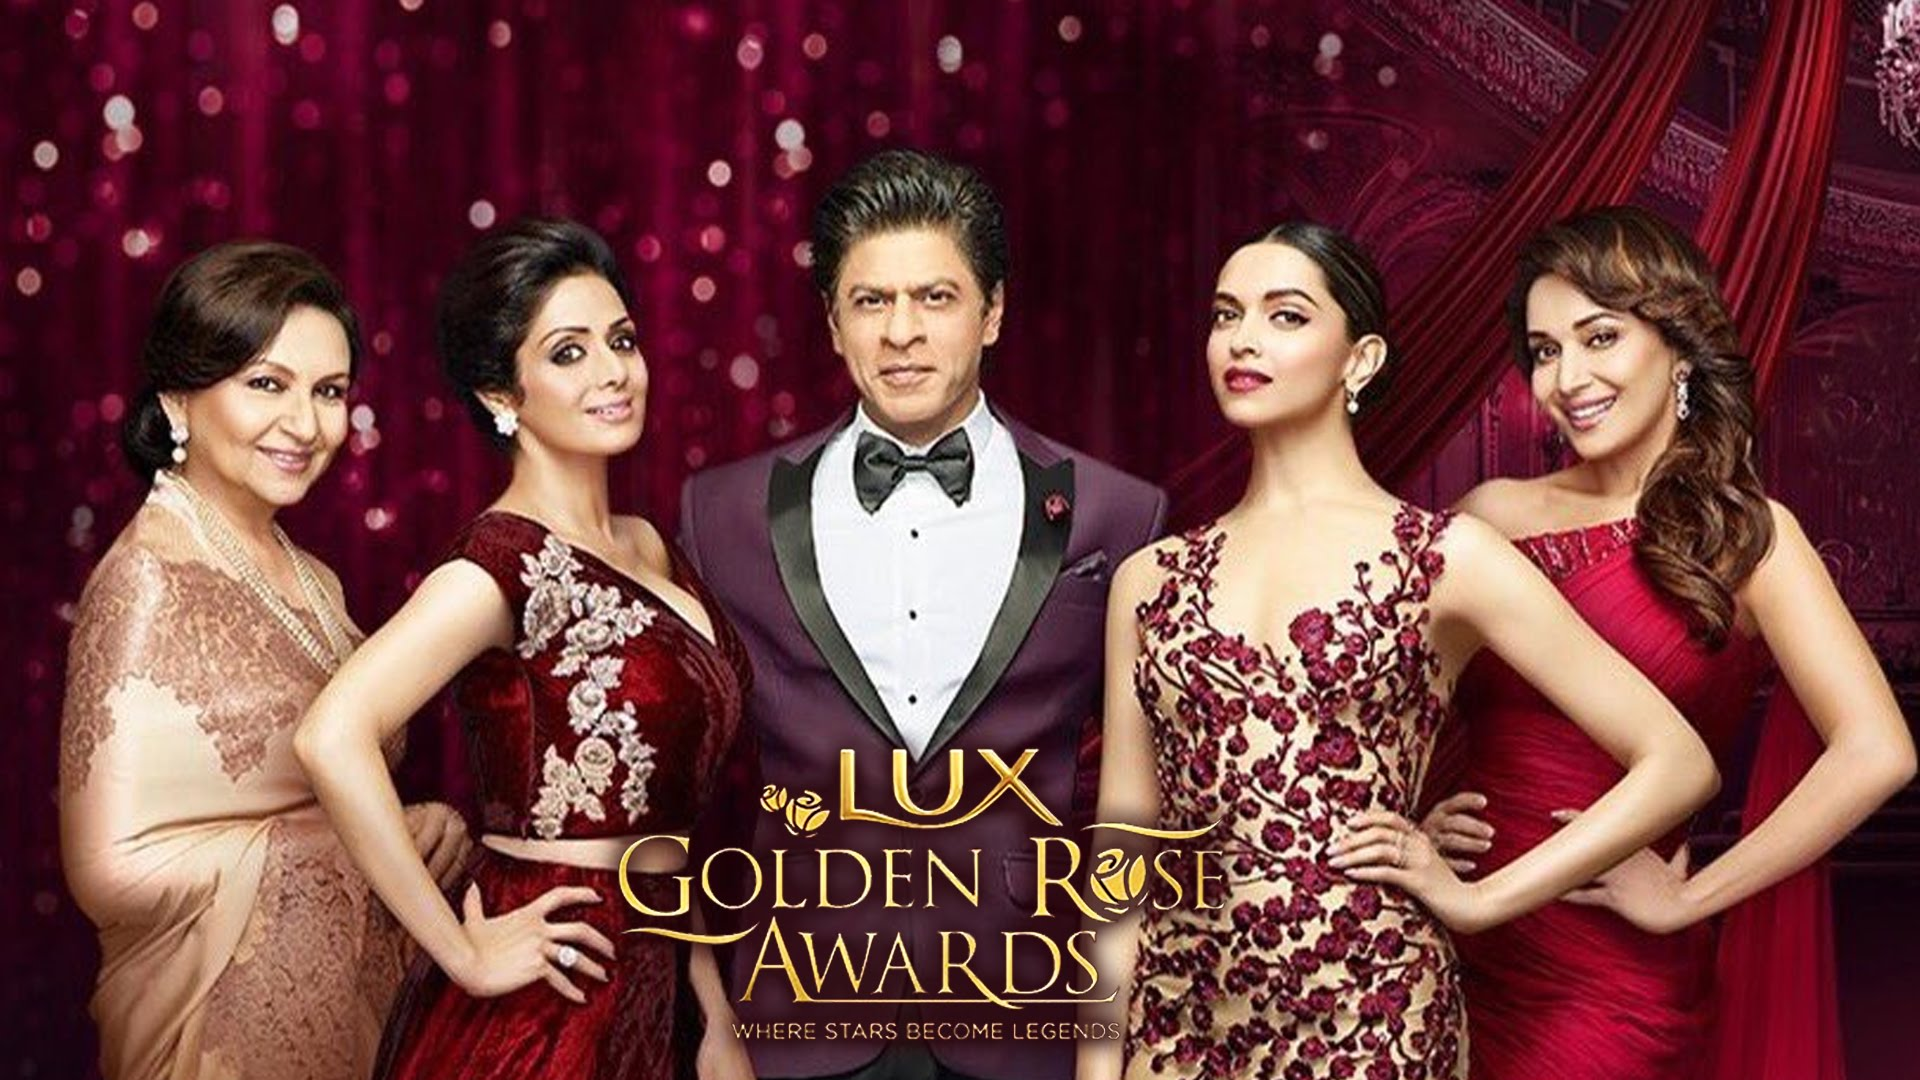 A GRAND EXTRAVAGANZA, THE SECOND EDITION OF LUX GOLDEN ROSE AWARDS IS BACK